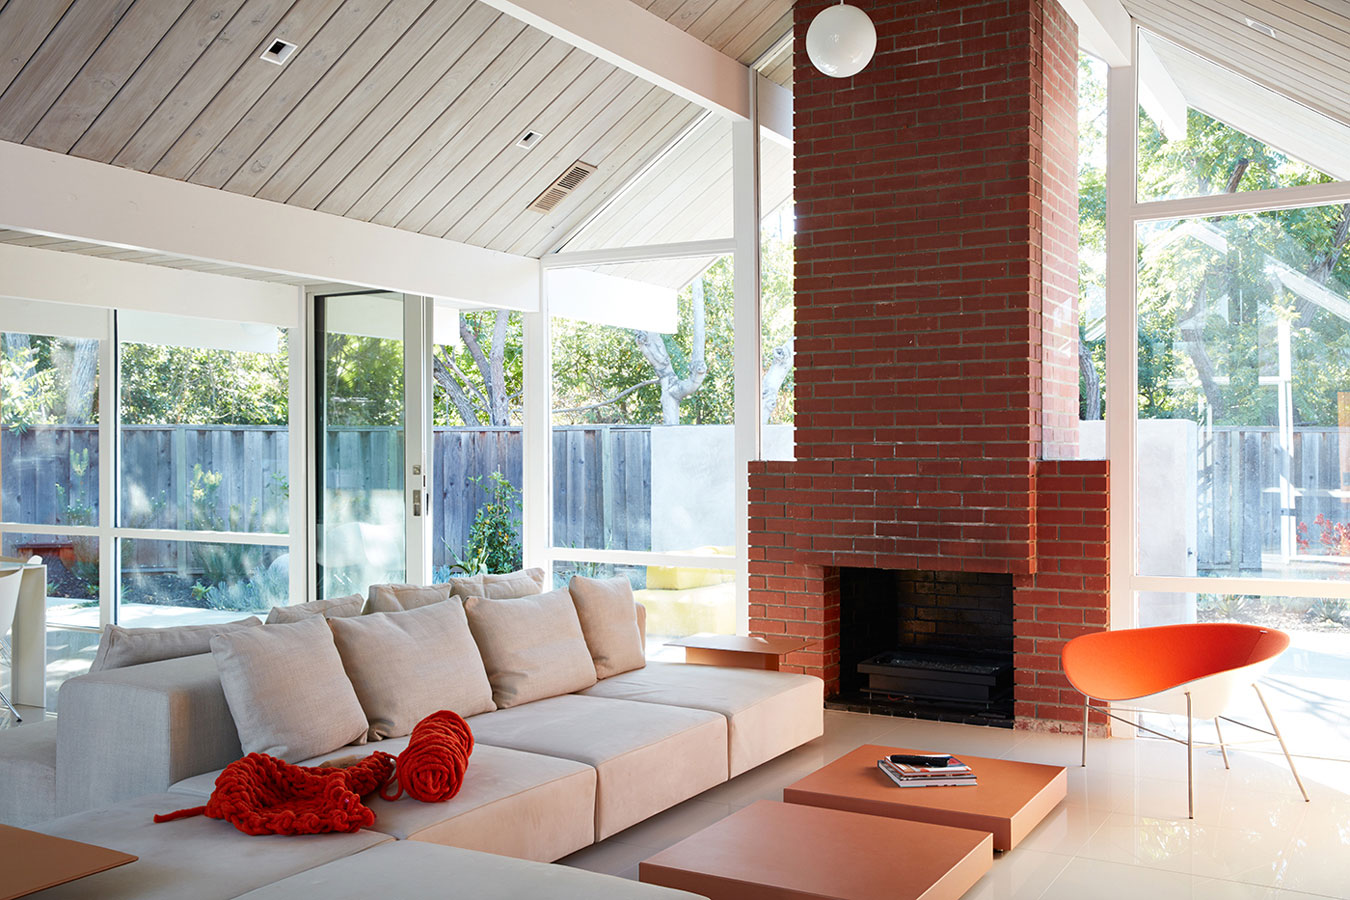 Klopf Architecture Remodels a Private Home in Mountain View, California